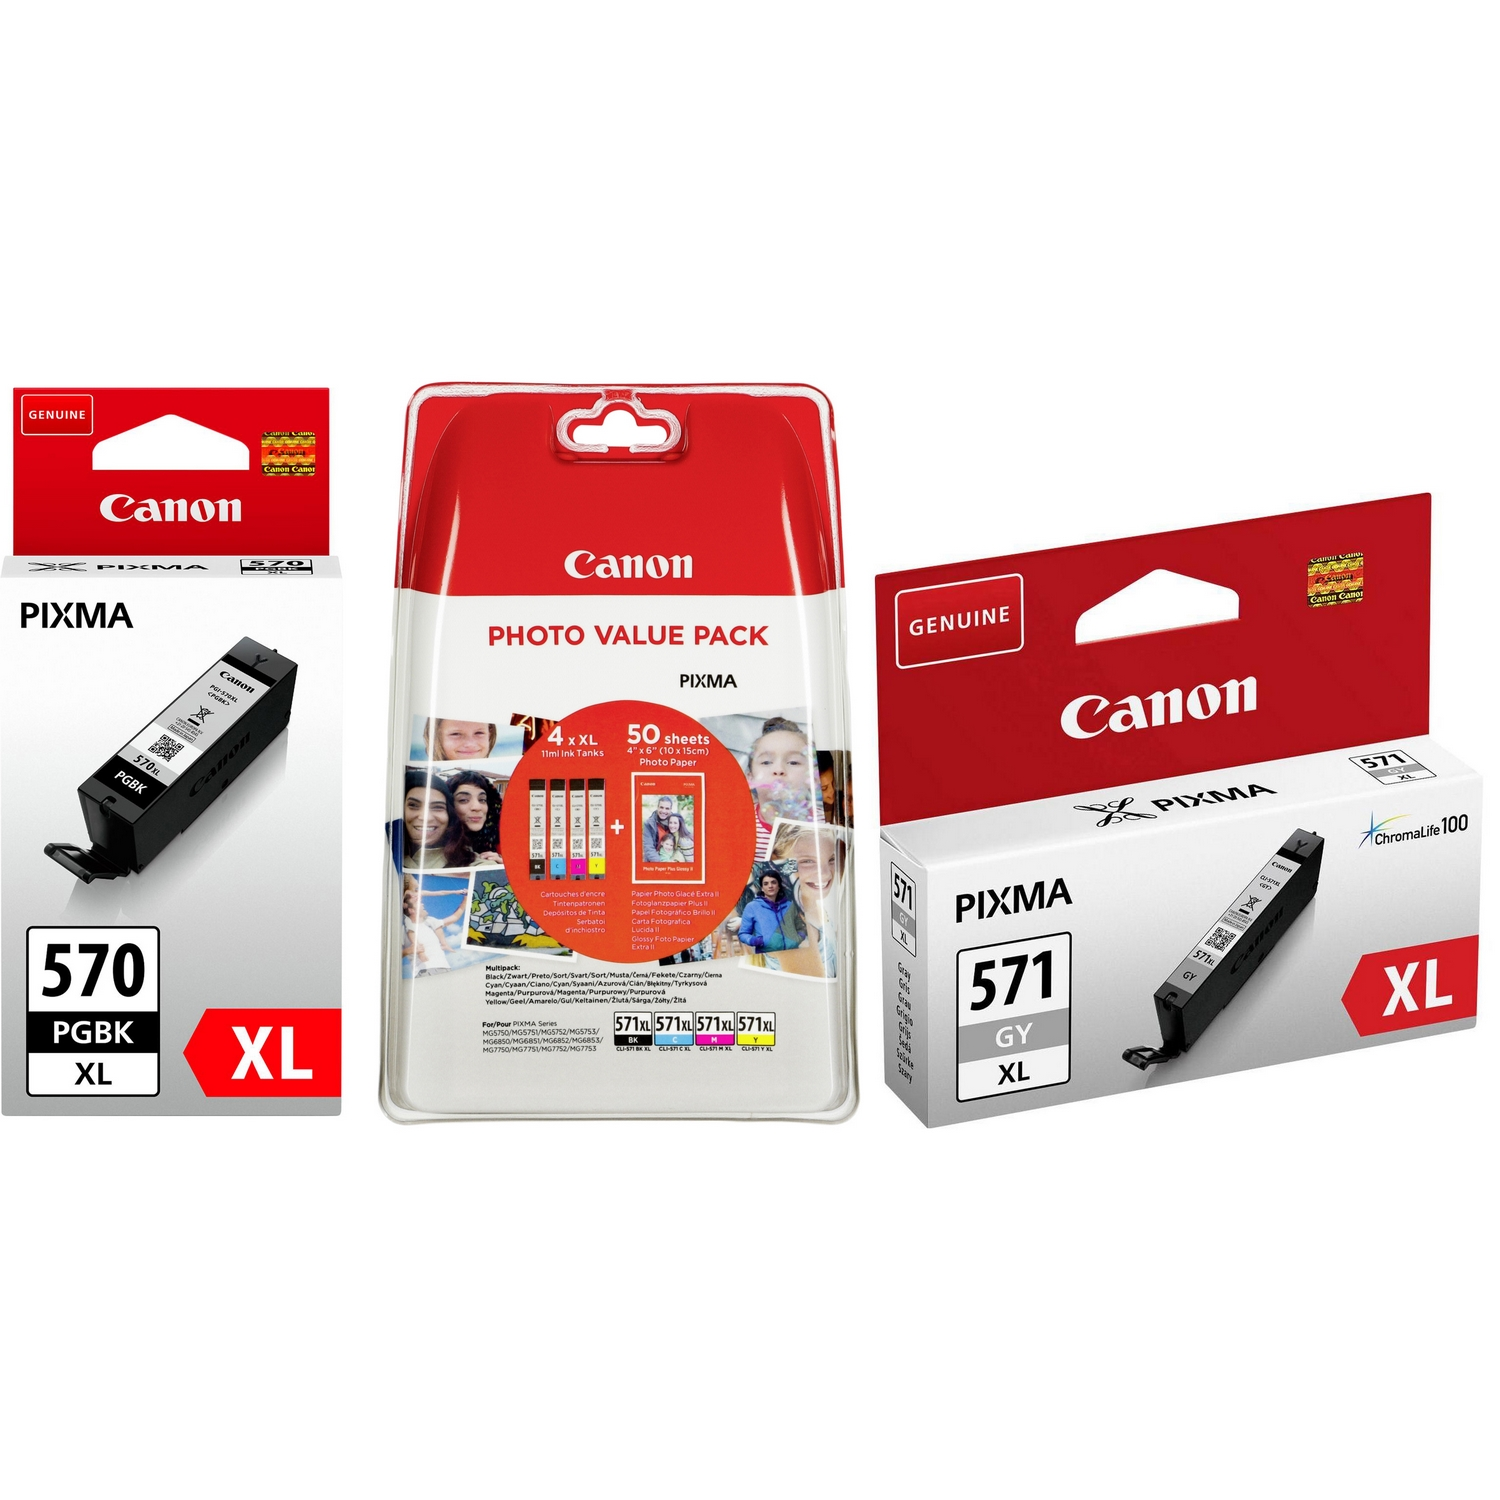 Original Canon PGI-570PGBKXL / CLI-571XL C, M, Y, K, GY Multipack High Capacity Ink Cartridges & Paper (0318C001 / 0332C005 / 0335C001)